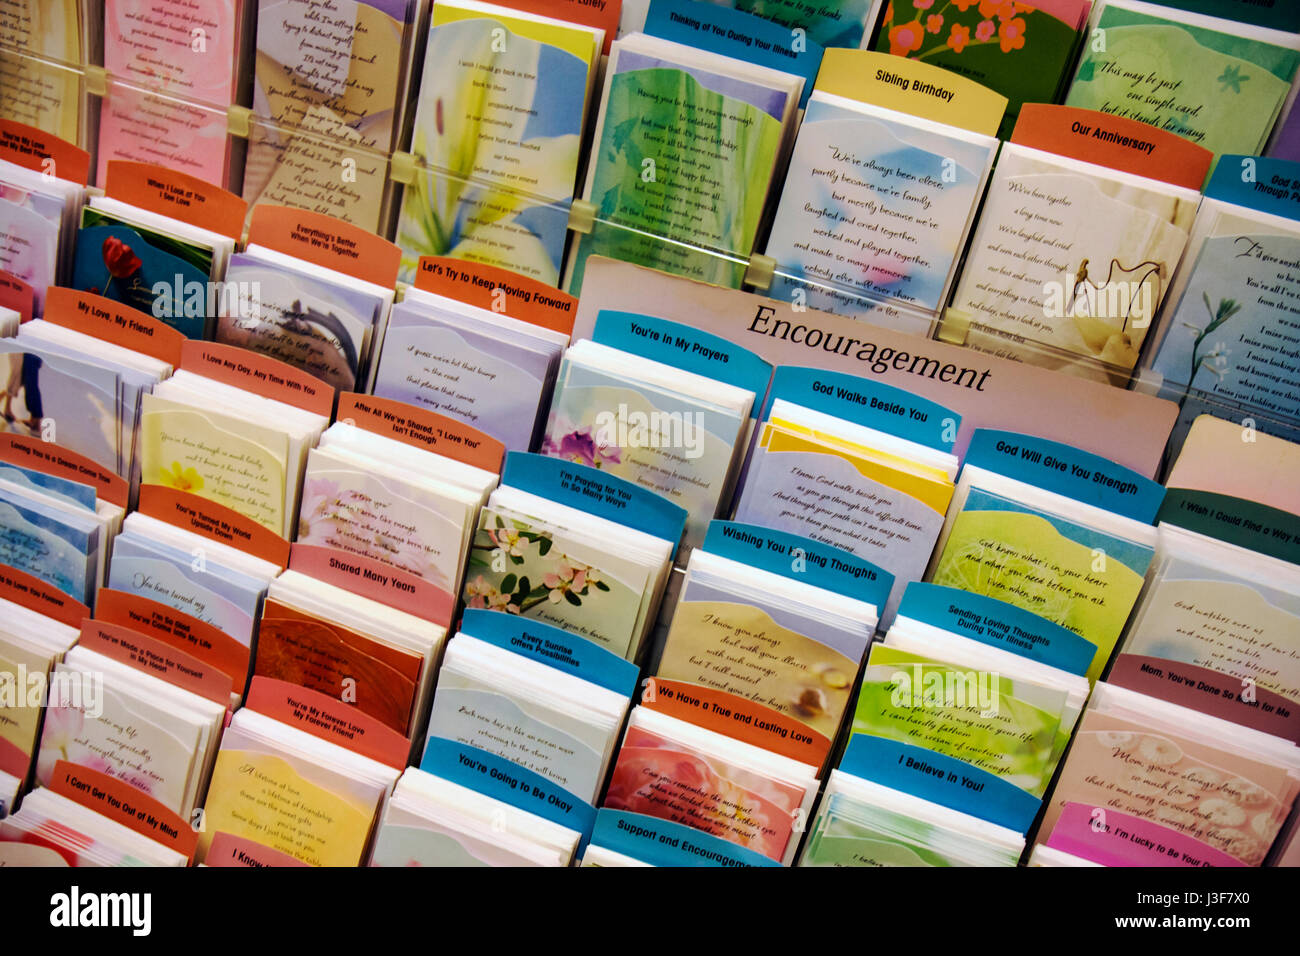 Miami beach florida greeting cards sentiments wishes encouragement